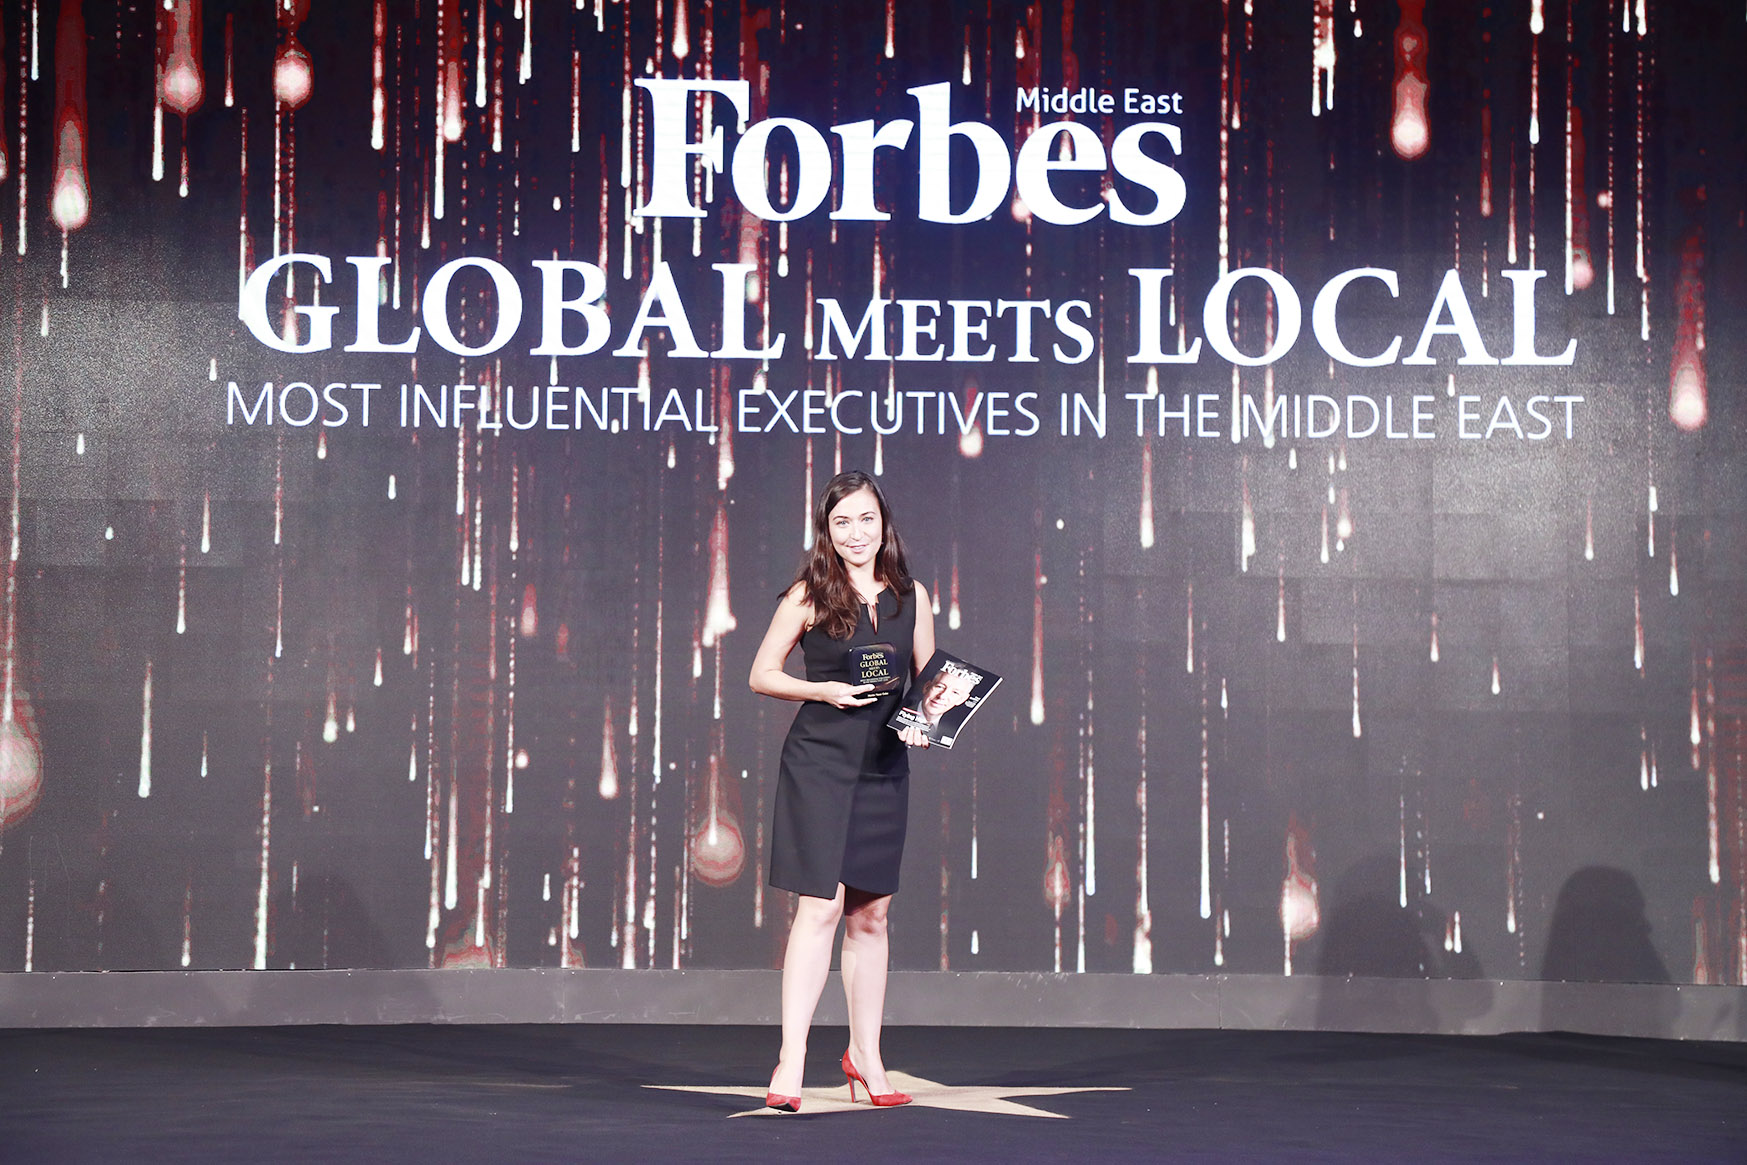 Global Meets Local 2019